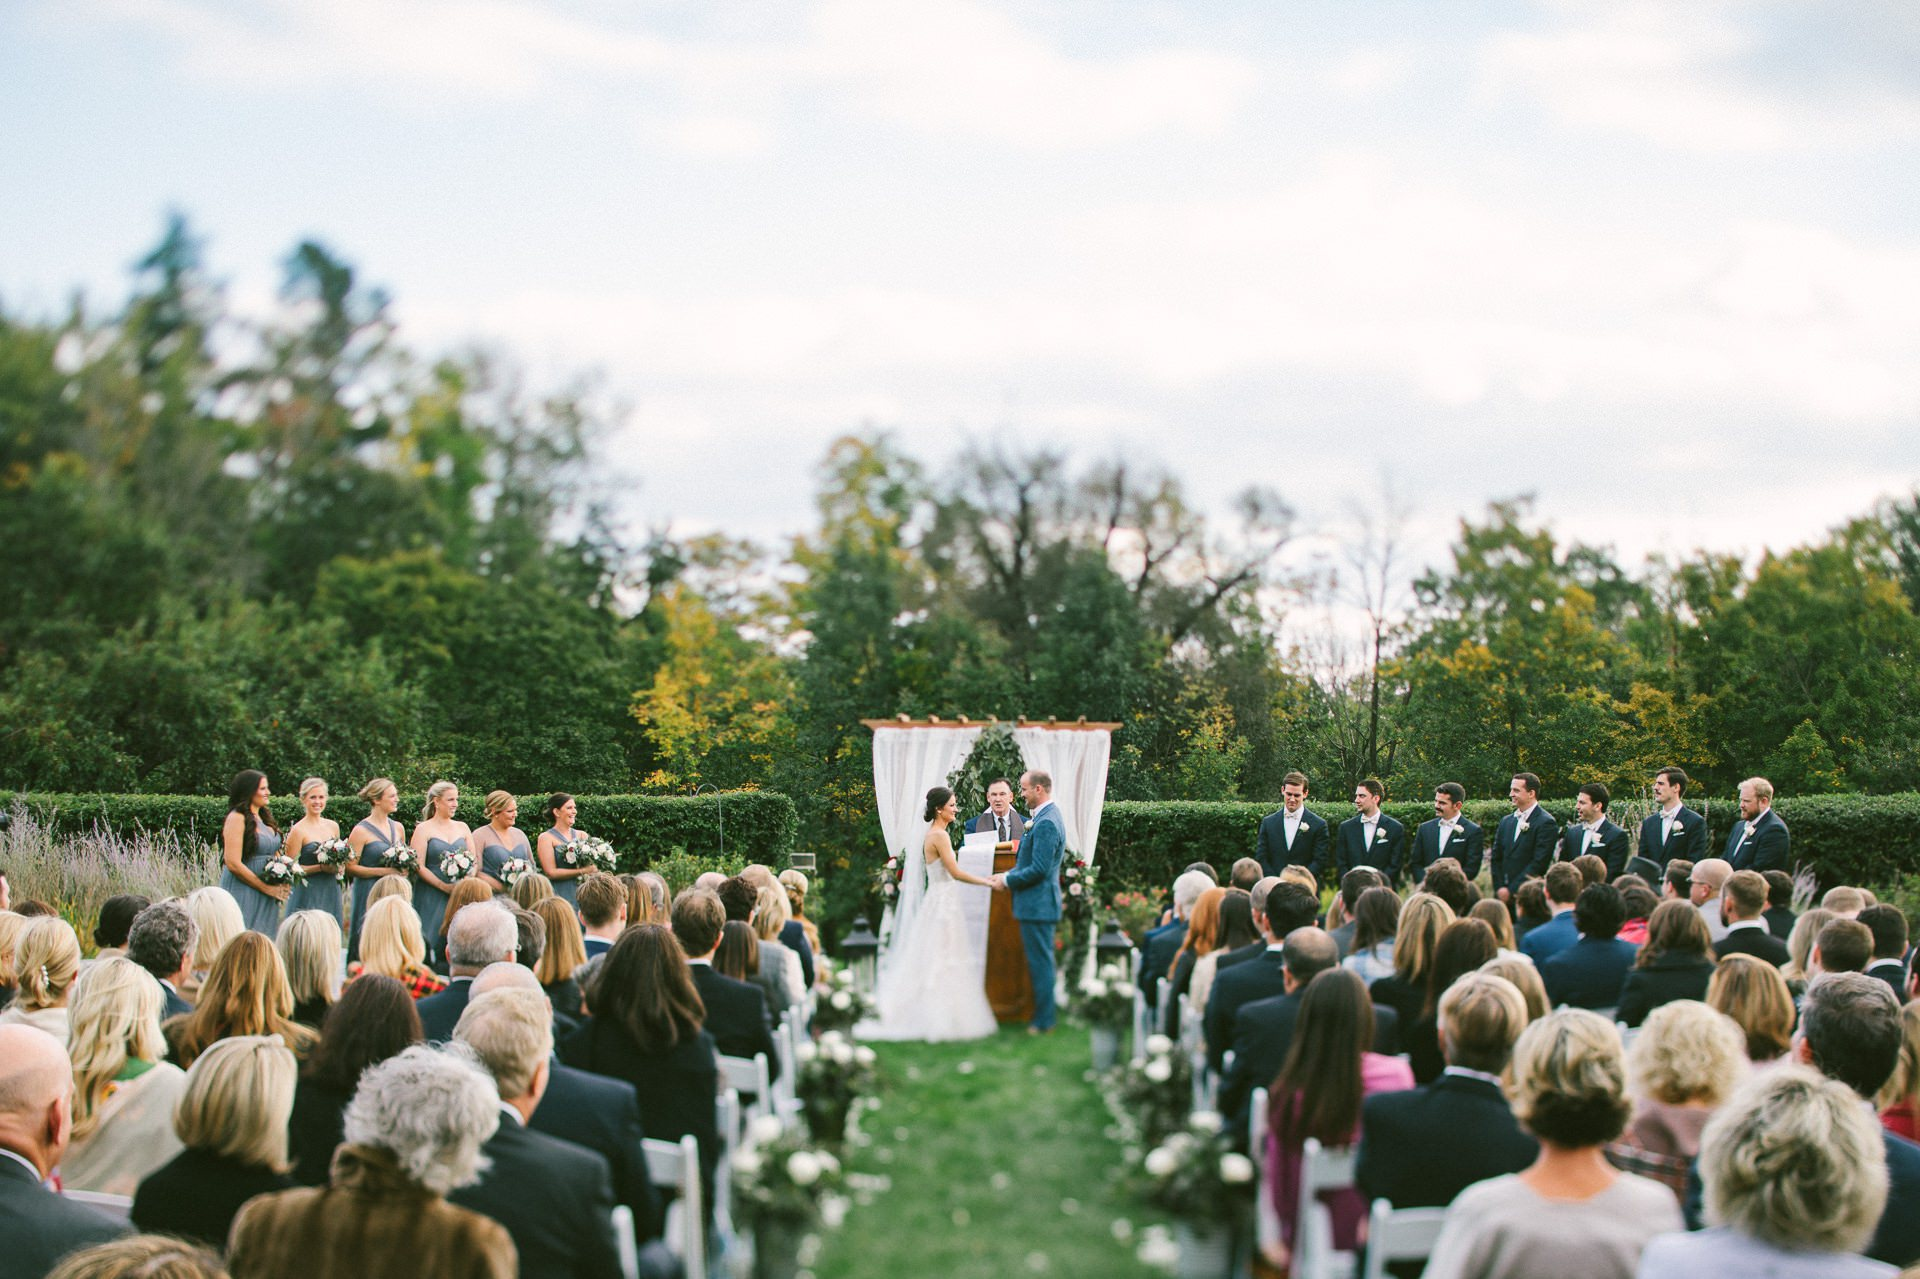 Wedding at Kirtland Country Club in Willoughby 3 7.jpg